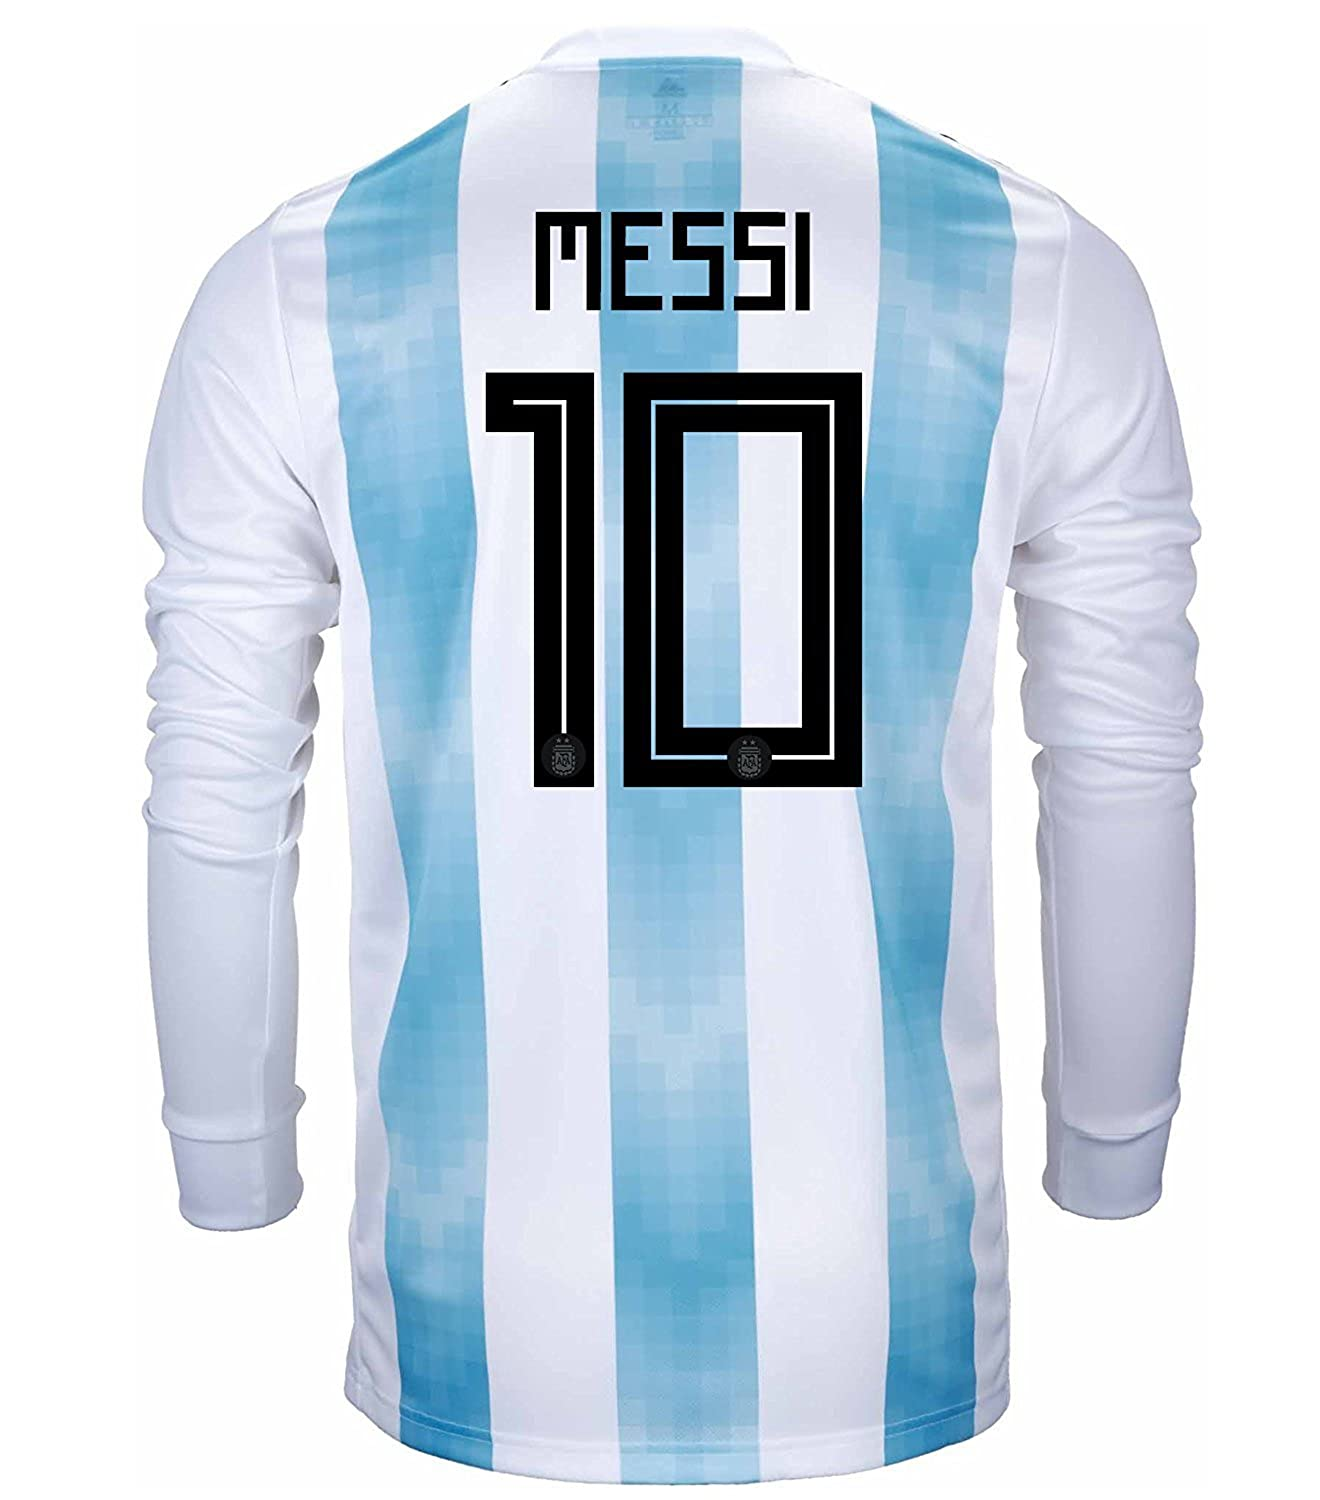 adidas Messi #10 Argentina Men's Home Soccer Jersey Long Sleeve World Cup Russia 2018 B079YWJFBD US X-Large